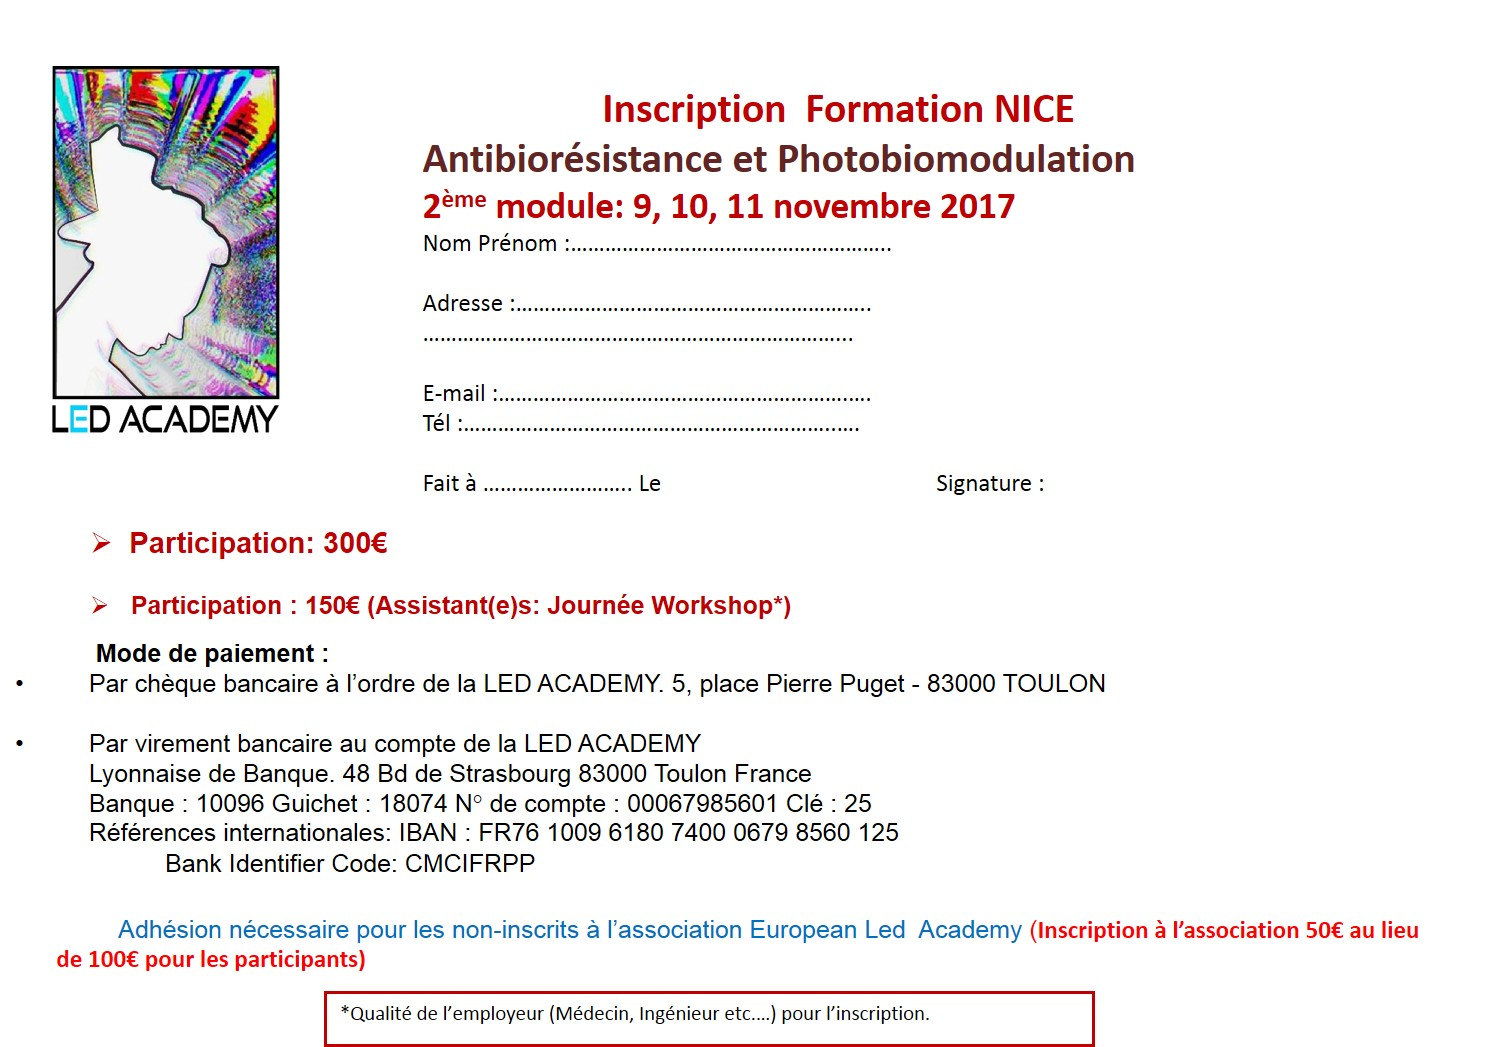 Fiche inscription Form Nice 2017